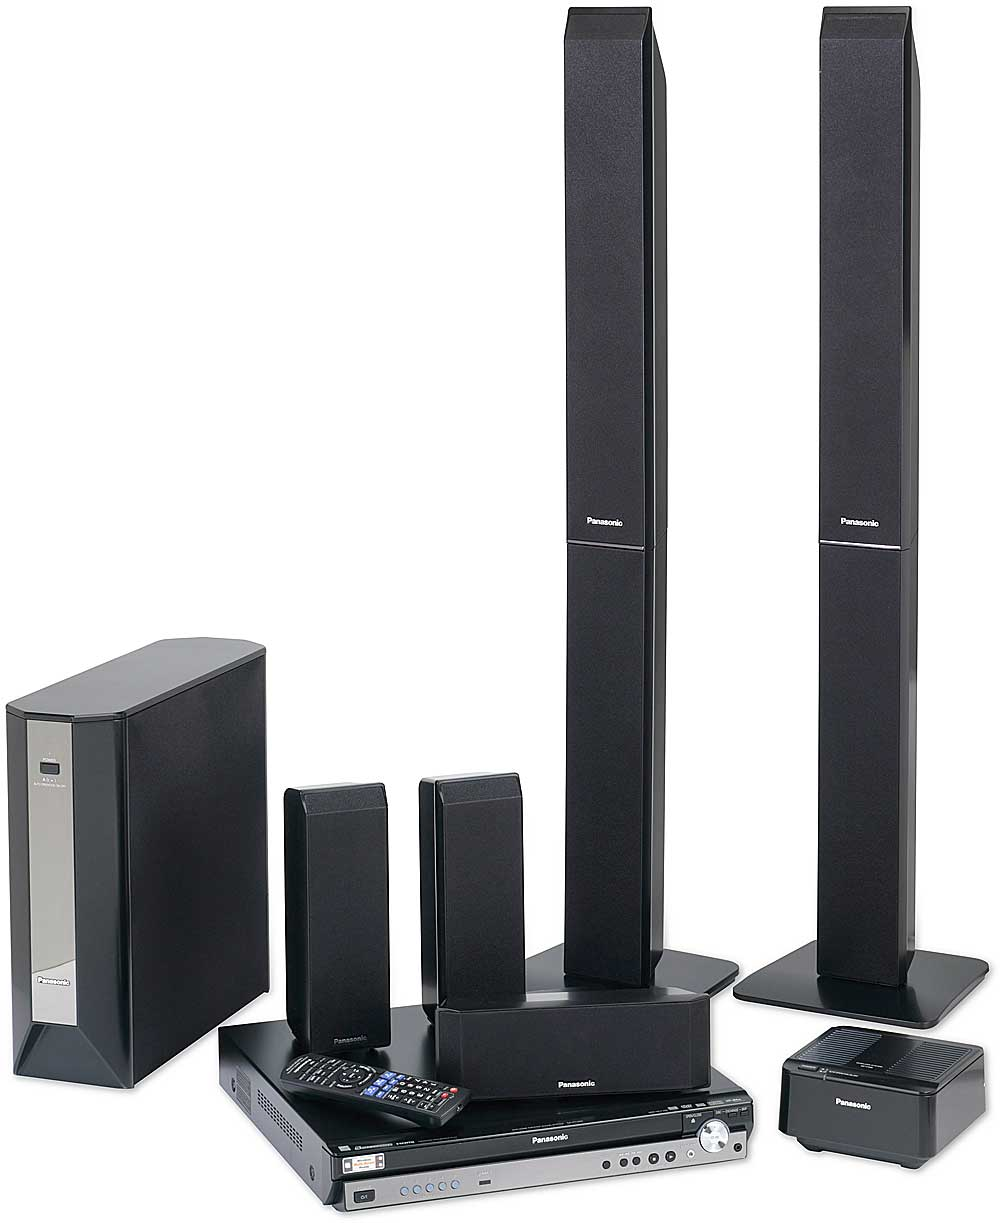 x133SCP1050 F panasonic sc pt1050 dvd home theater system with 1080p dvd Panasonic Car Stereo Wiring Diagram at nearapp.co